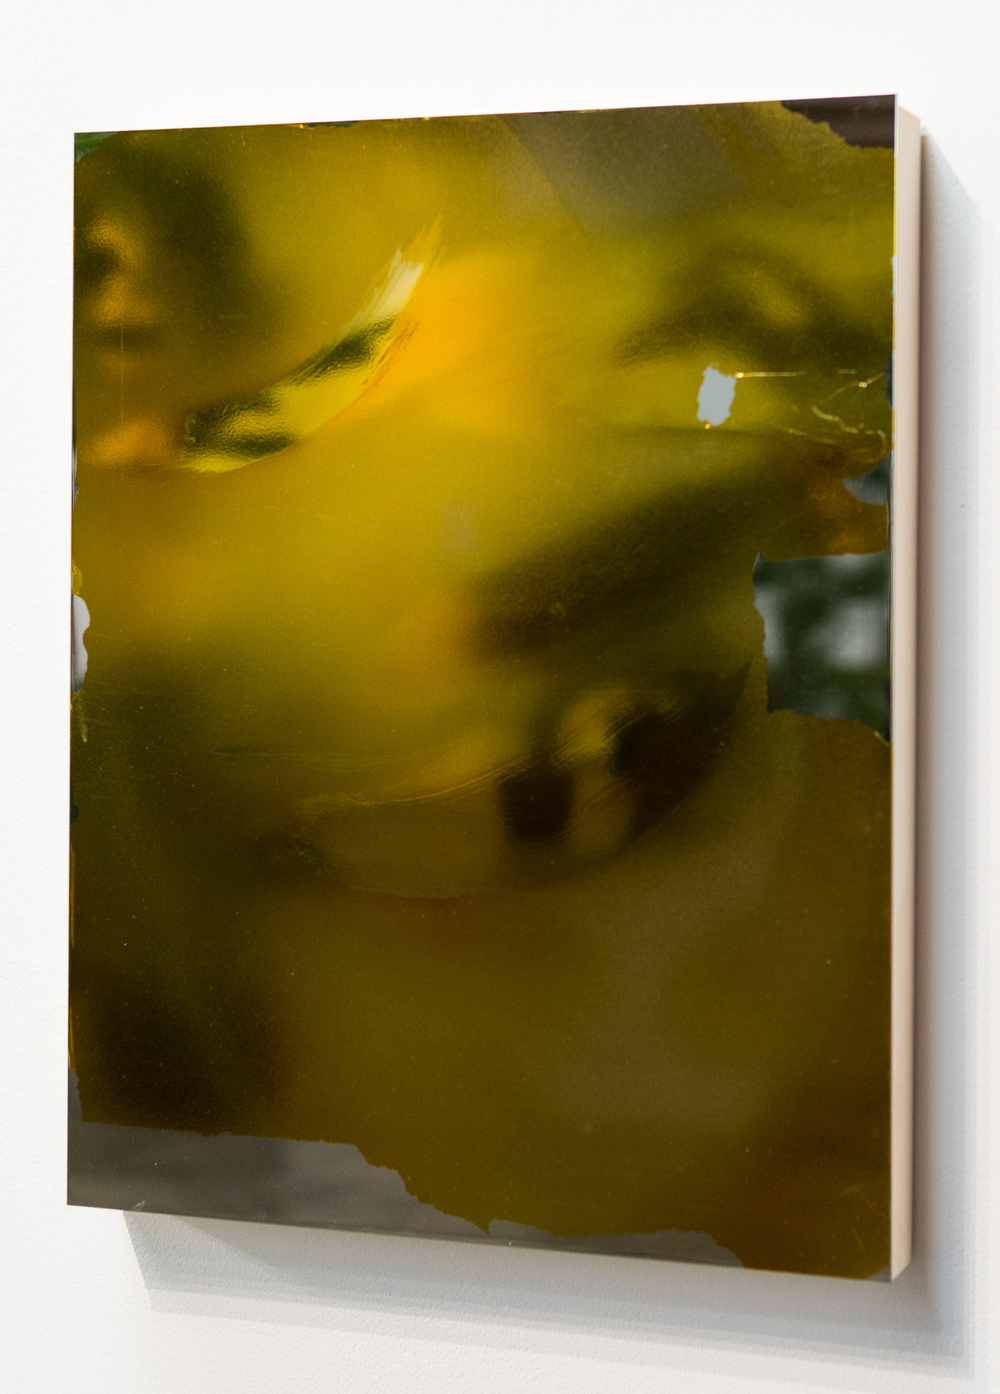 MLSL_10_Bunny  , 2015    Gold tint on stainless steel    18 x 14 in (45.72 x 35.56 cm)